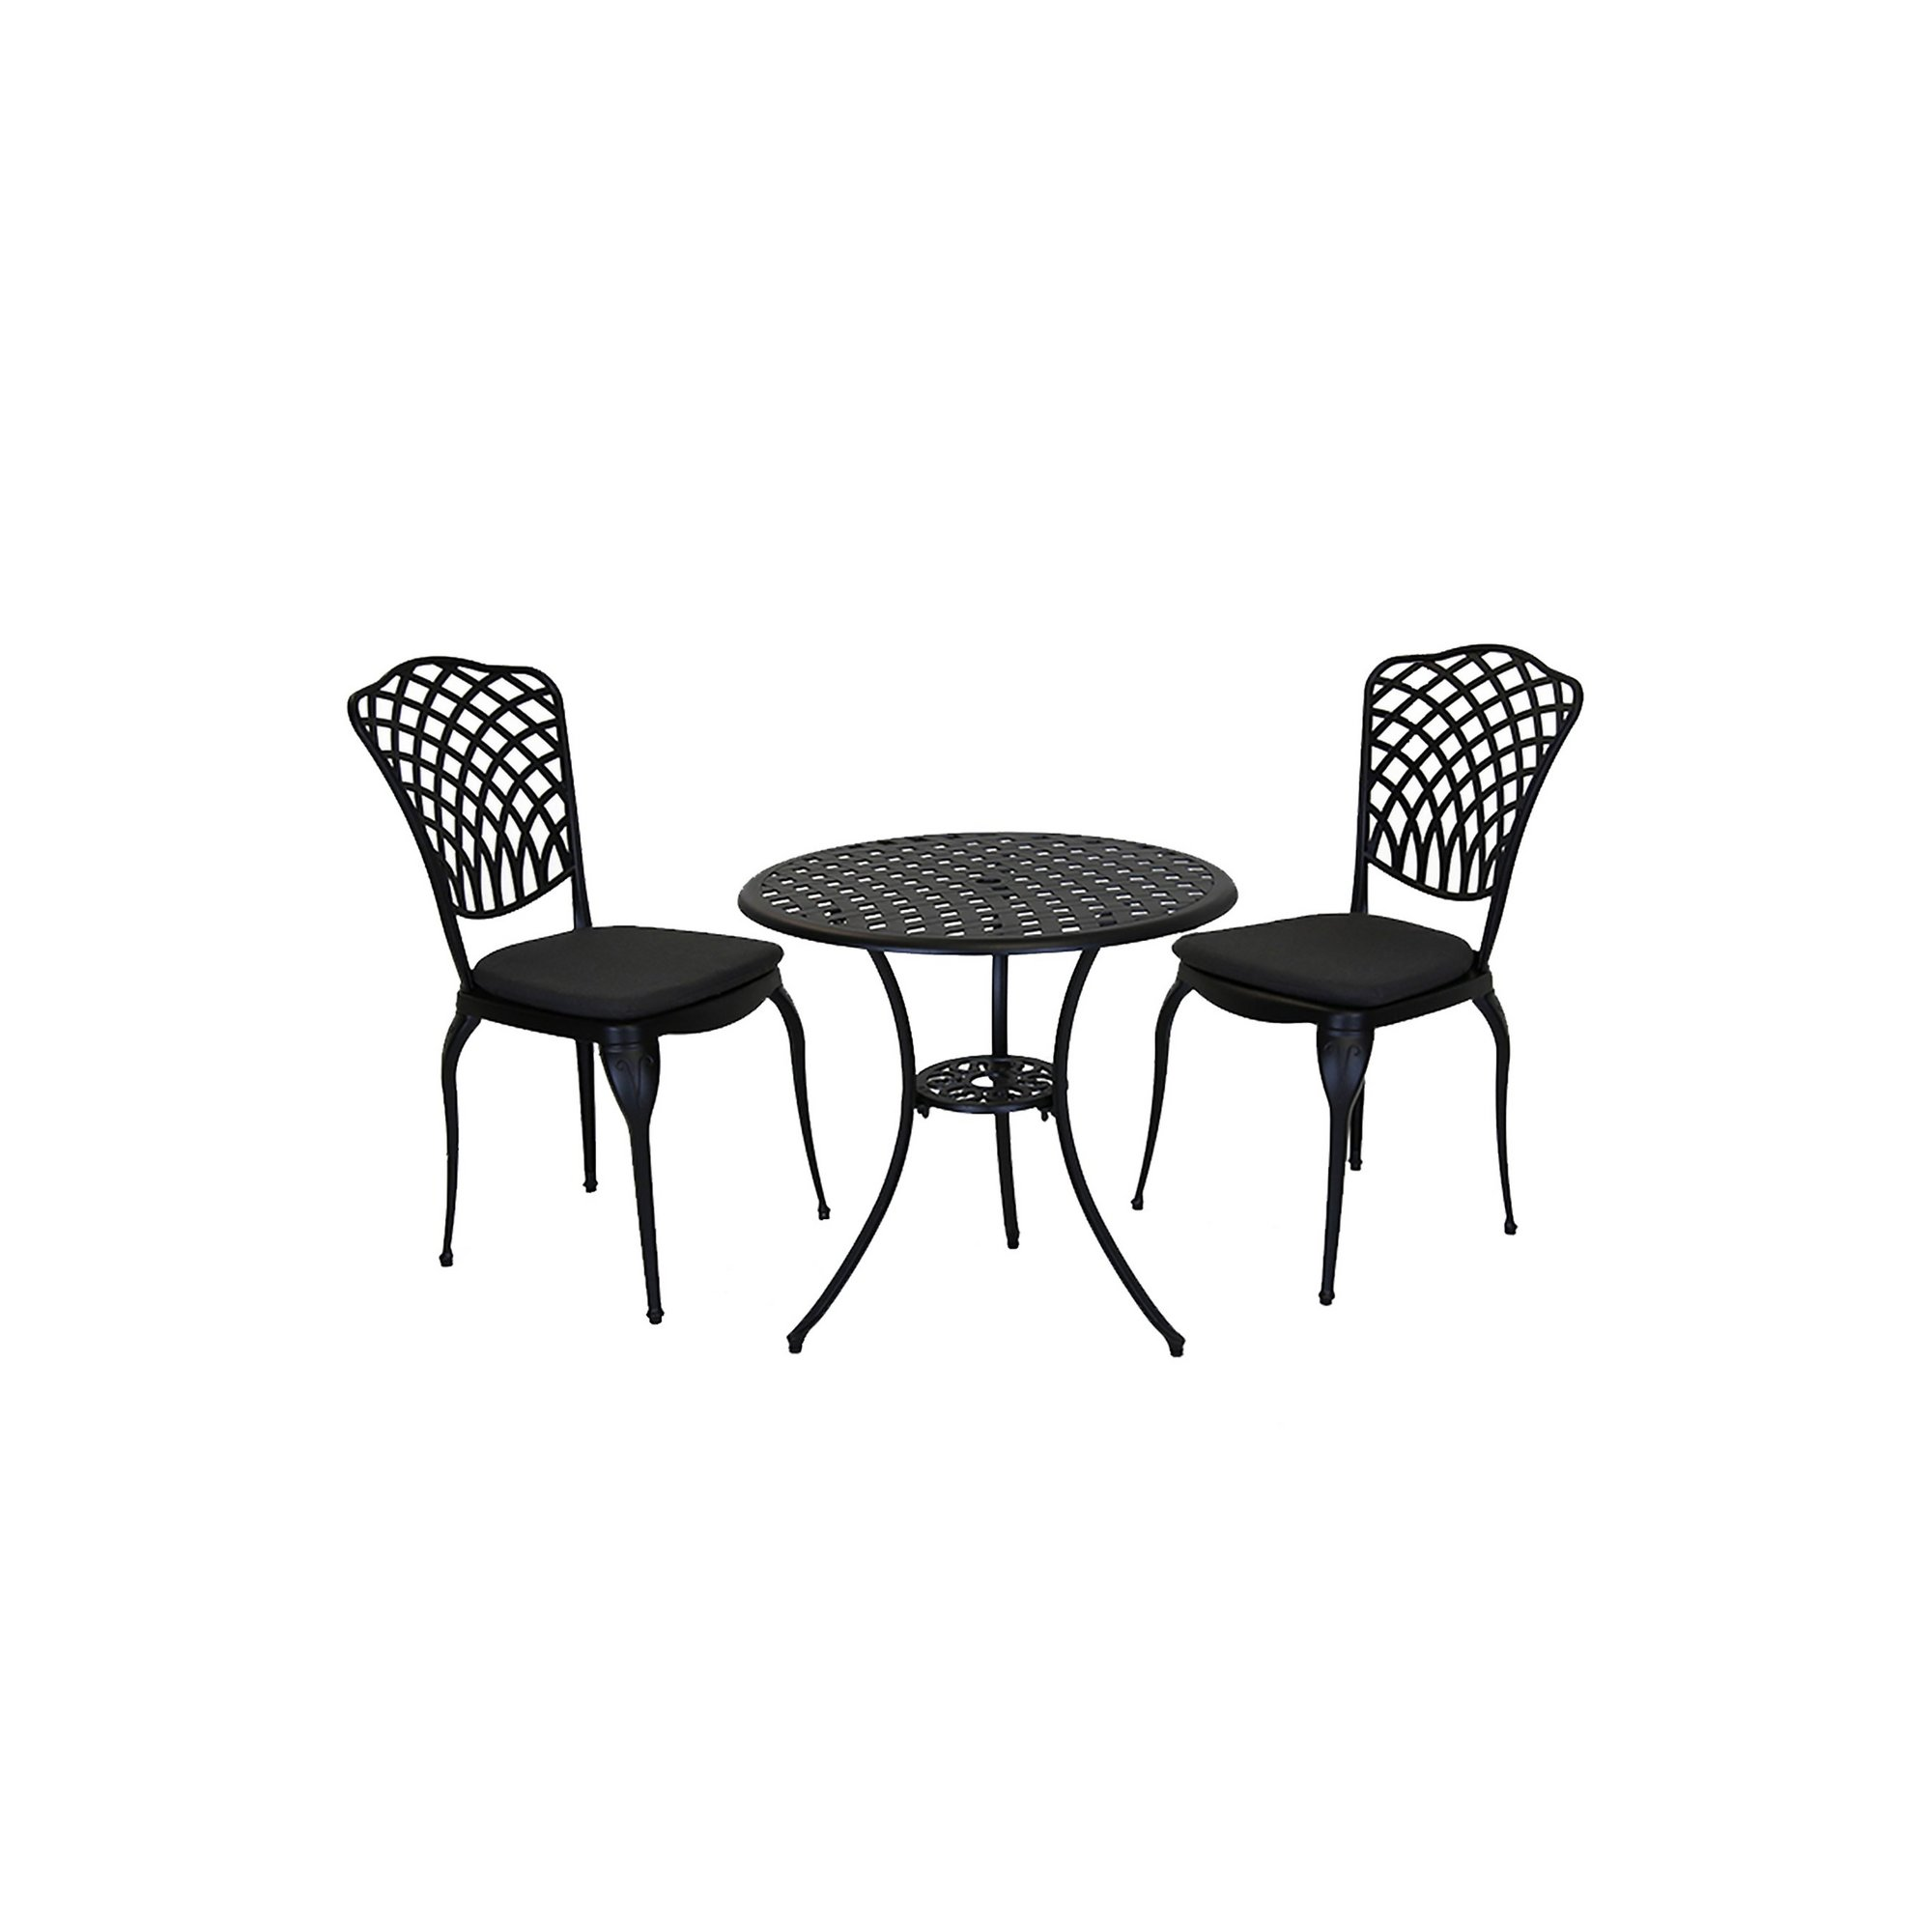 Image of Charles Bentley Cast Aluminium Bistro Table and Chairs Set